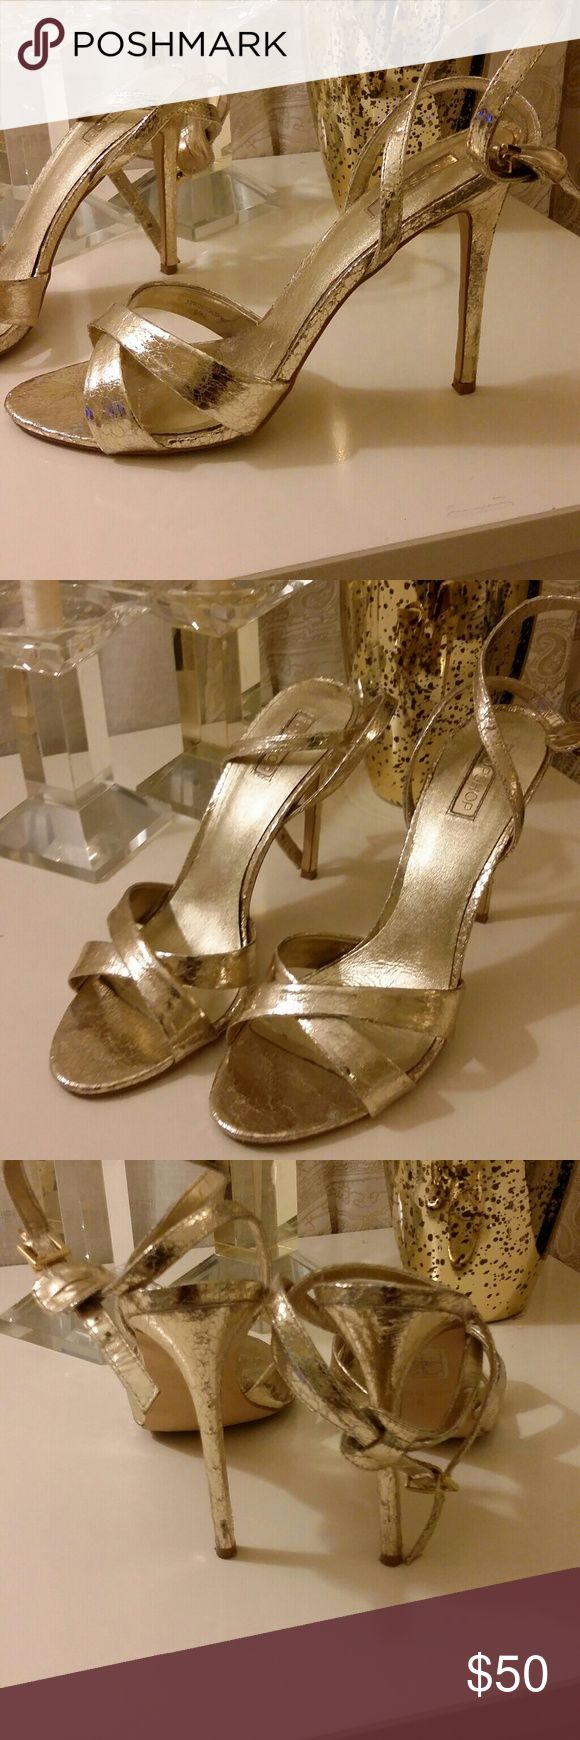 TopShop Gold Strappy Sandals Tres chic! Sexy gold sandals, worn twice. Just doing a closet clean out and i havent worn them so maybe you will! Topshop Shoes Heels